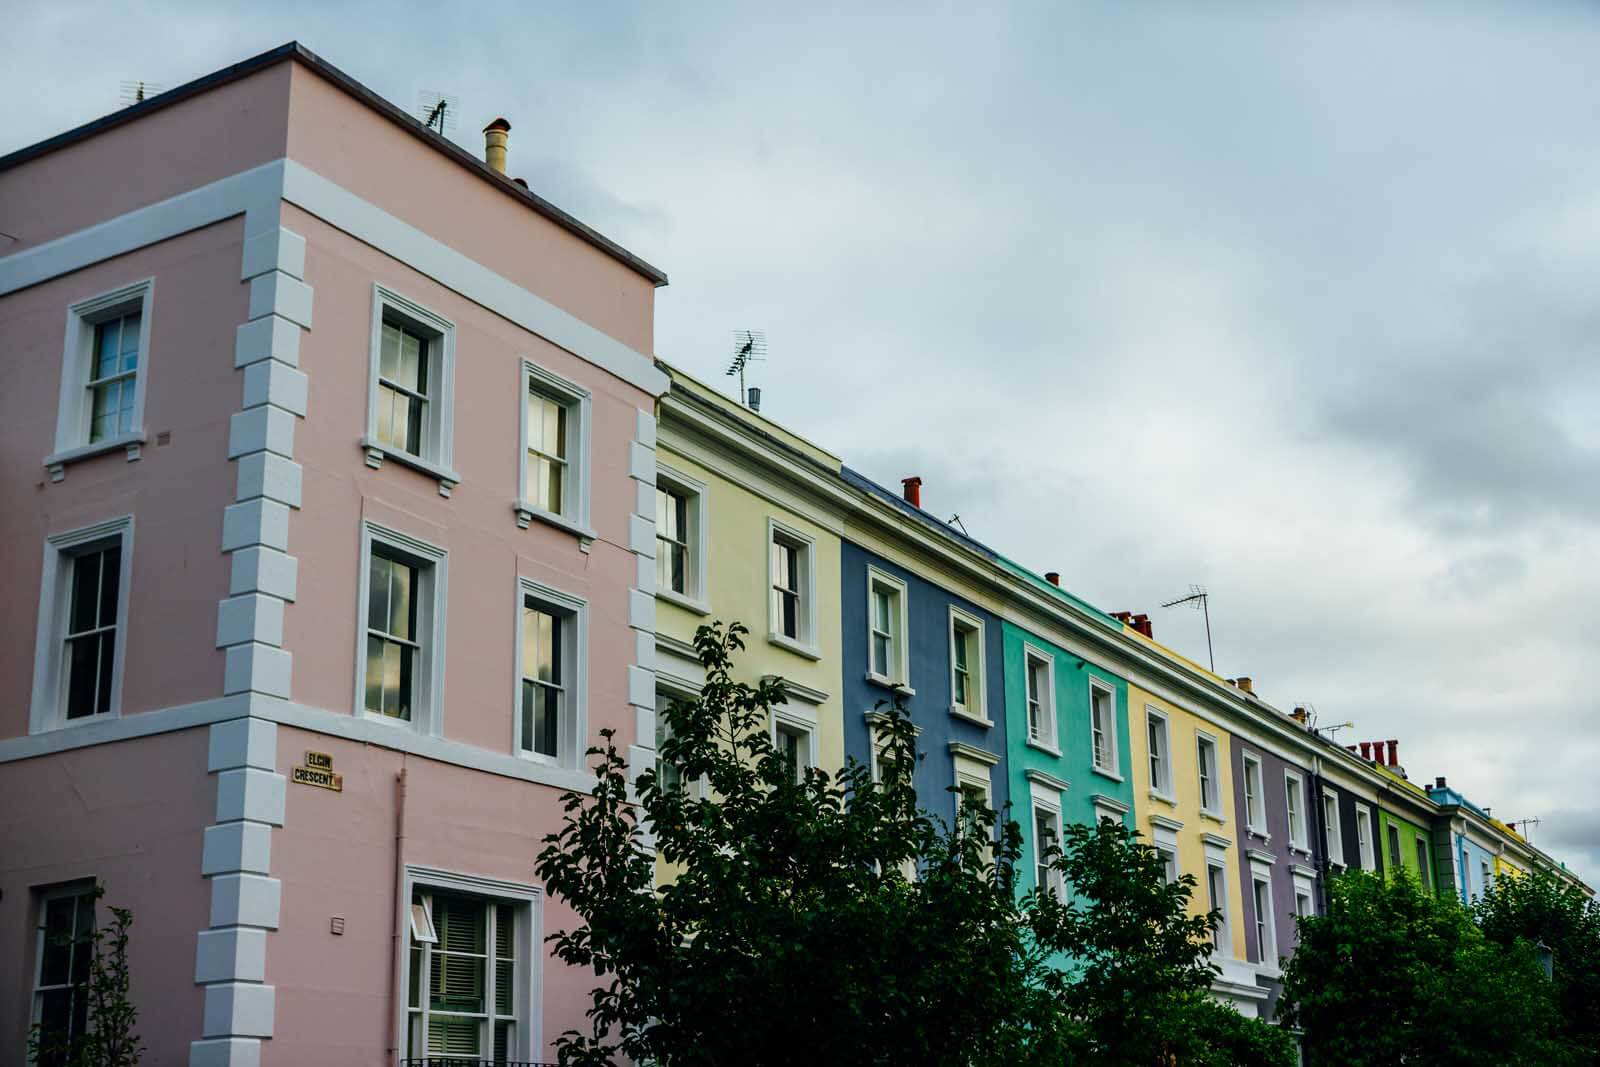 Colorful homes of Elgin Road in Notting Hill London